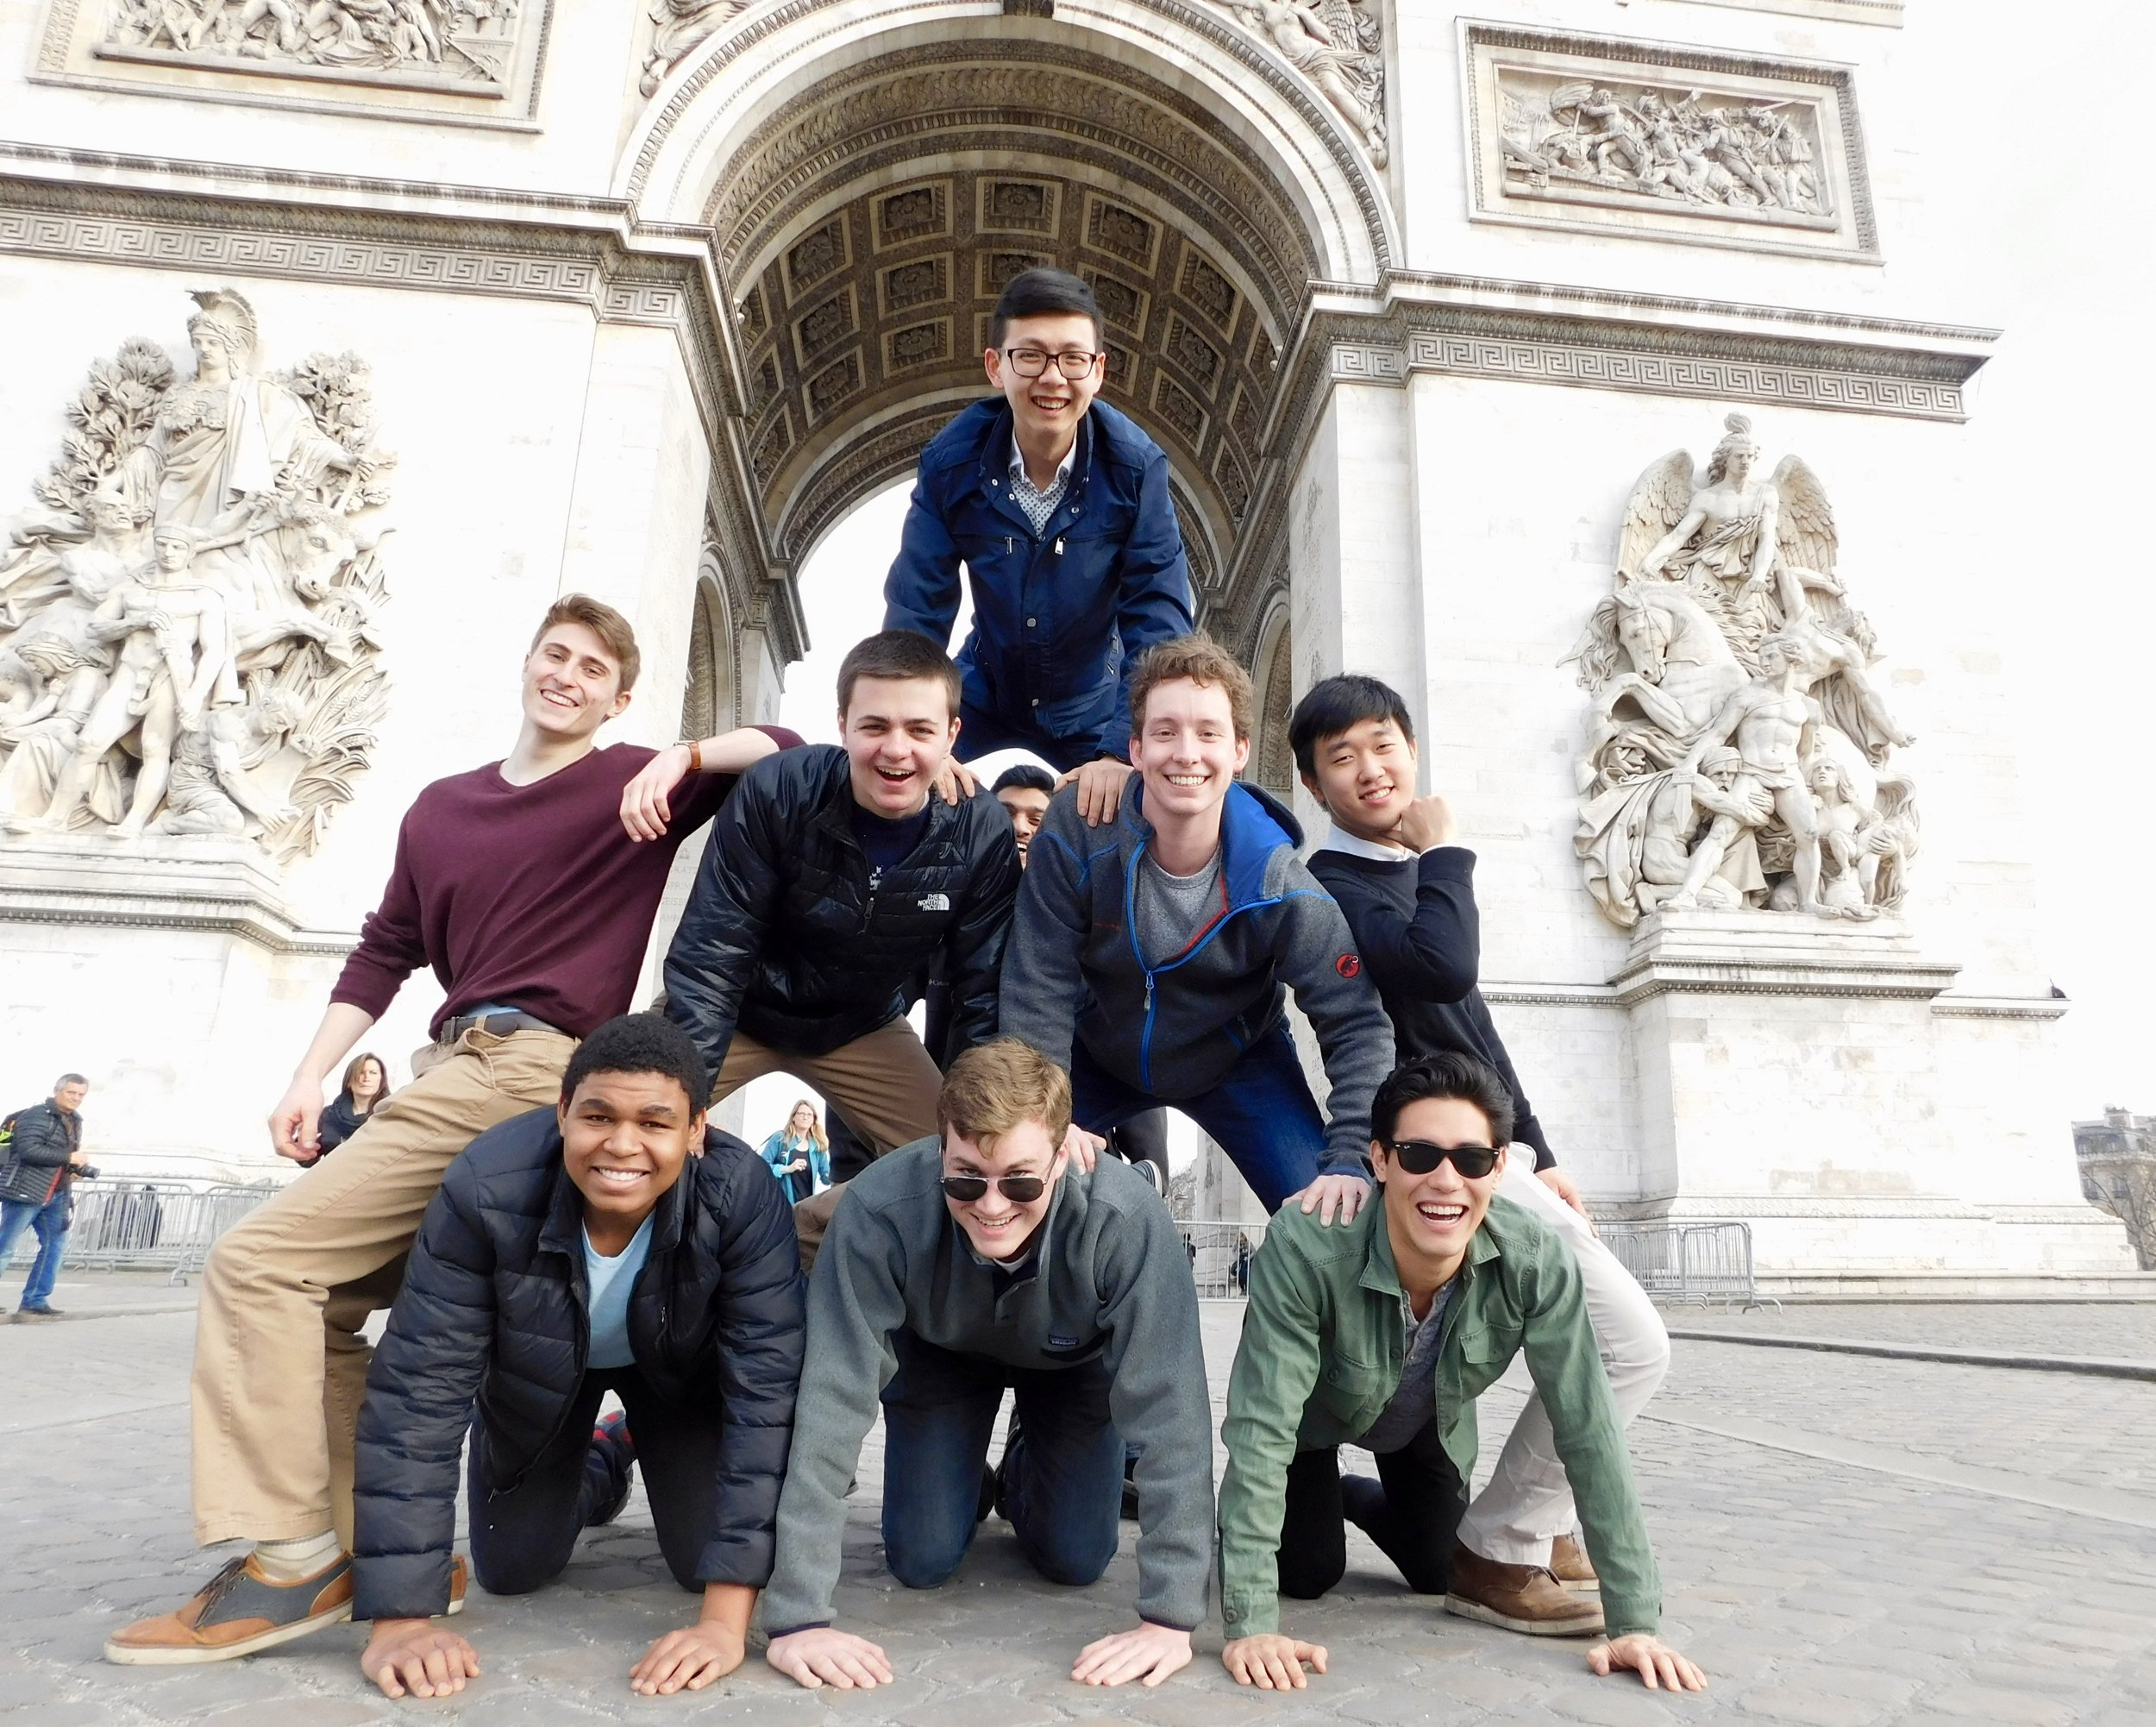 Alley Cat pyramid in front of the Arc de Triomphe